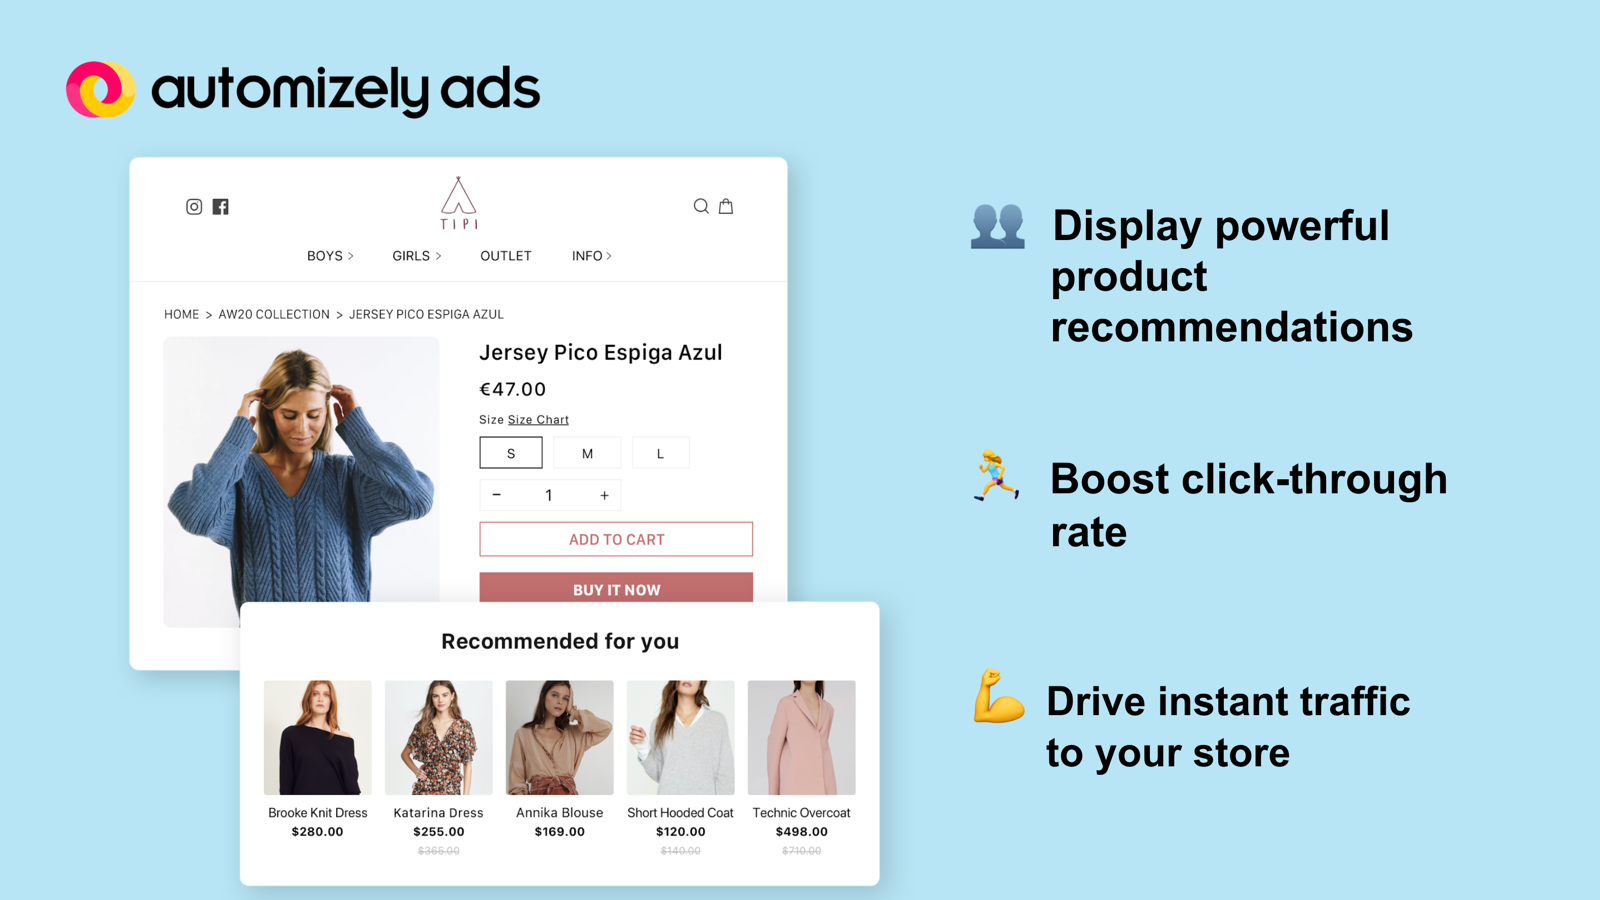 Display powerful product recommendations